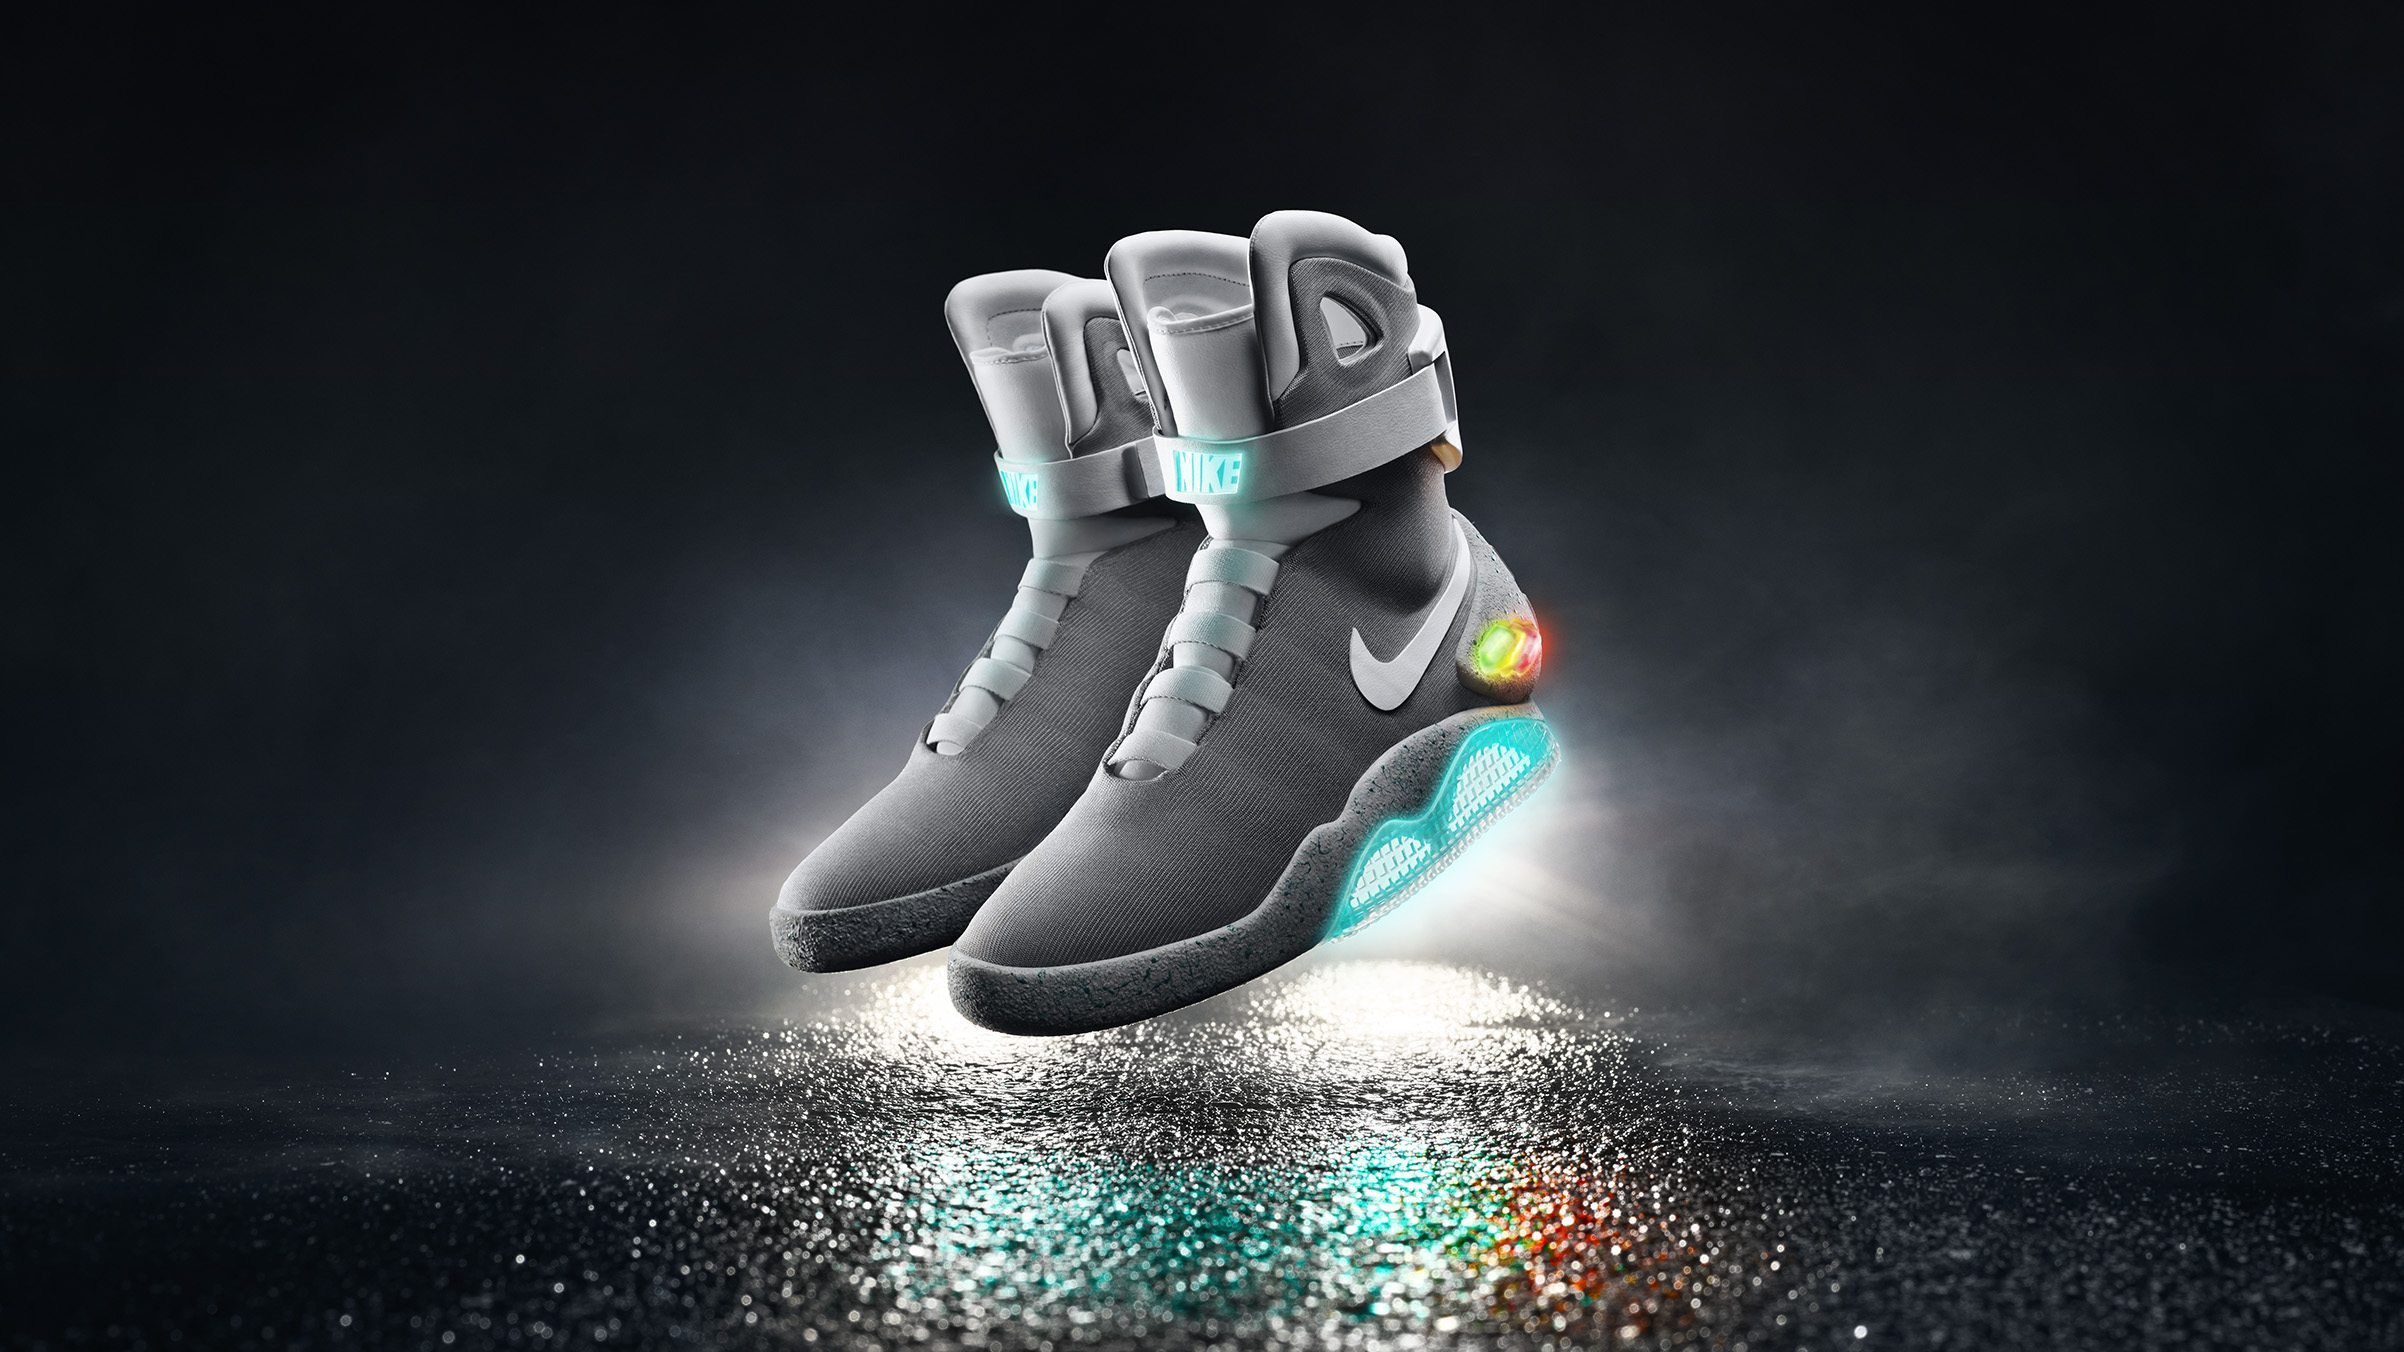 The 2015 Nike MAG 1